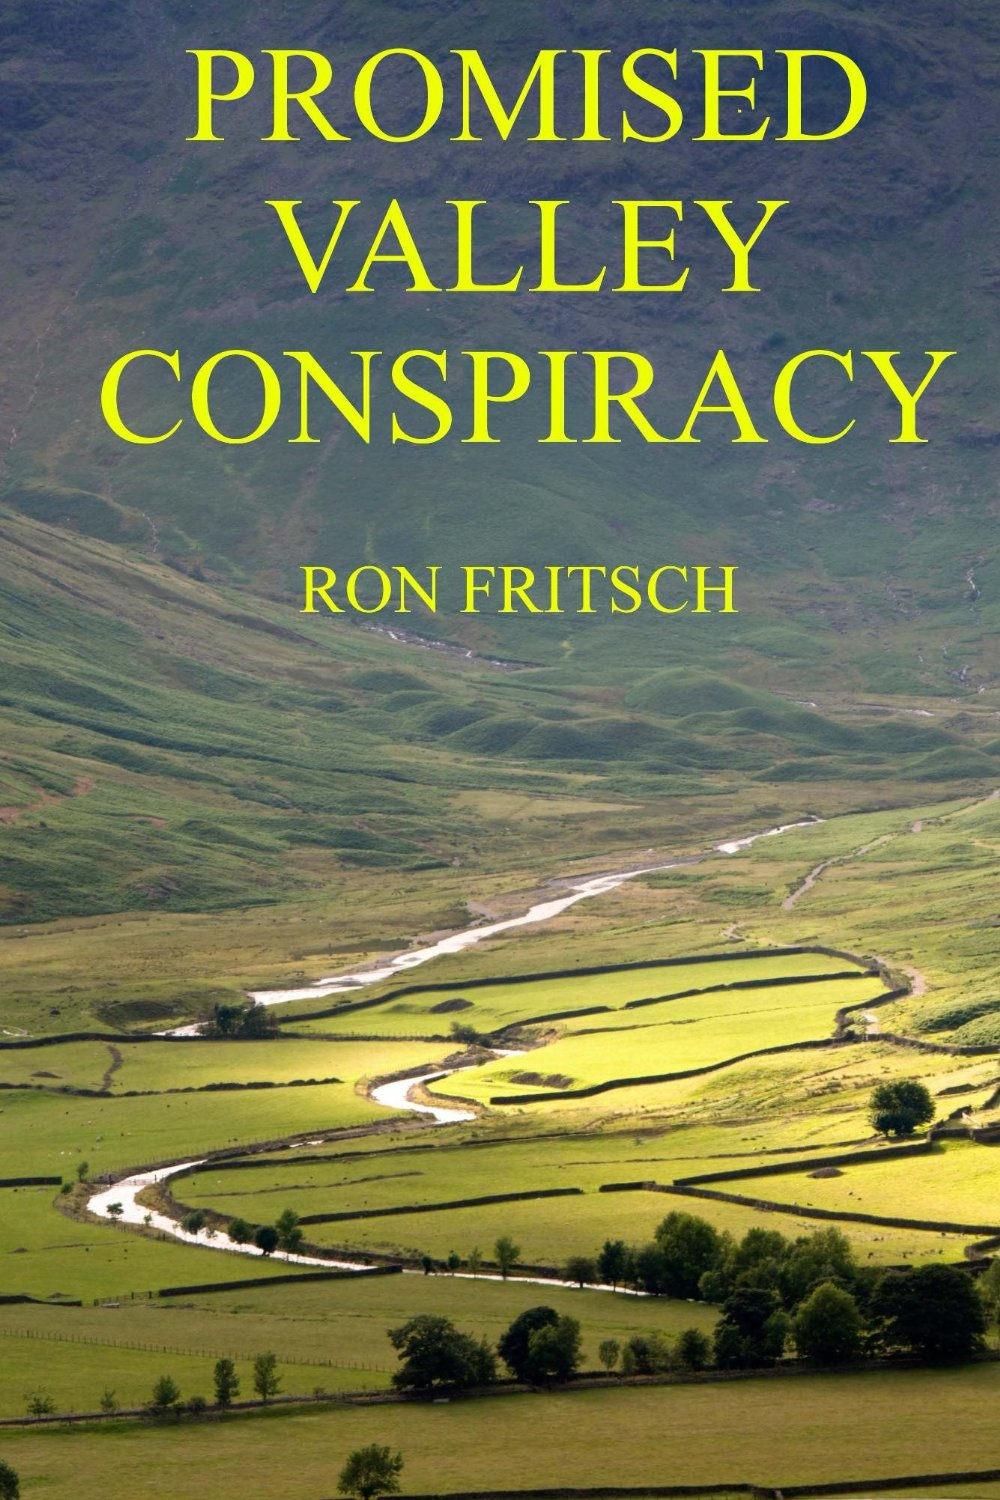 Promised Valley Conspiracy.jpg